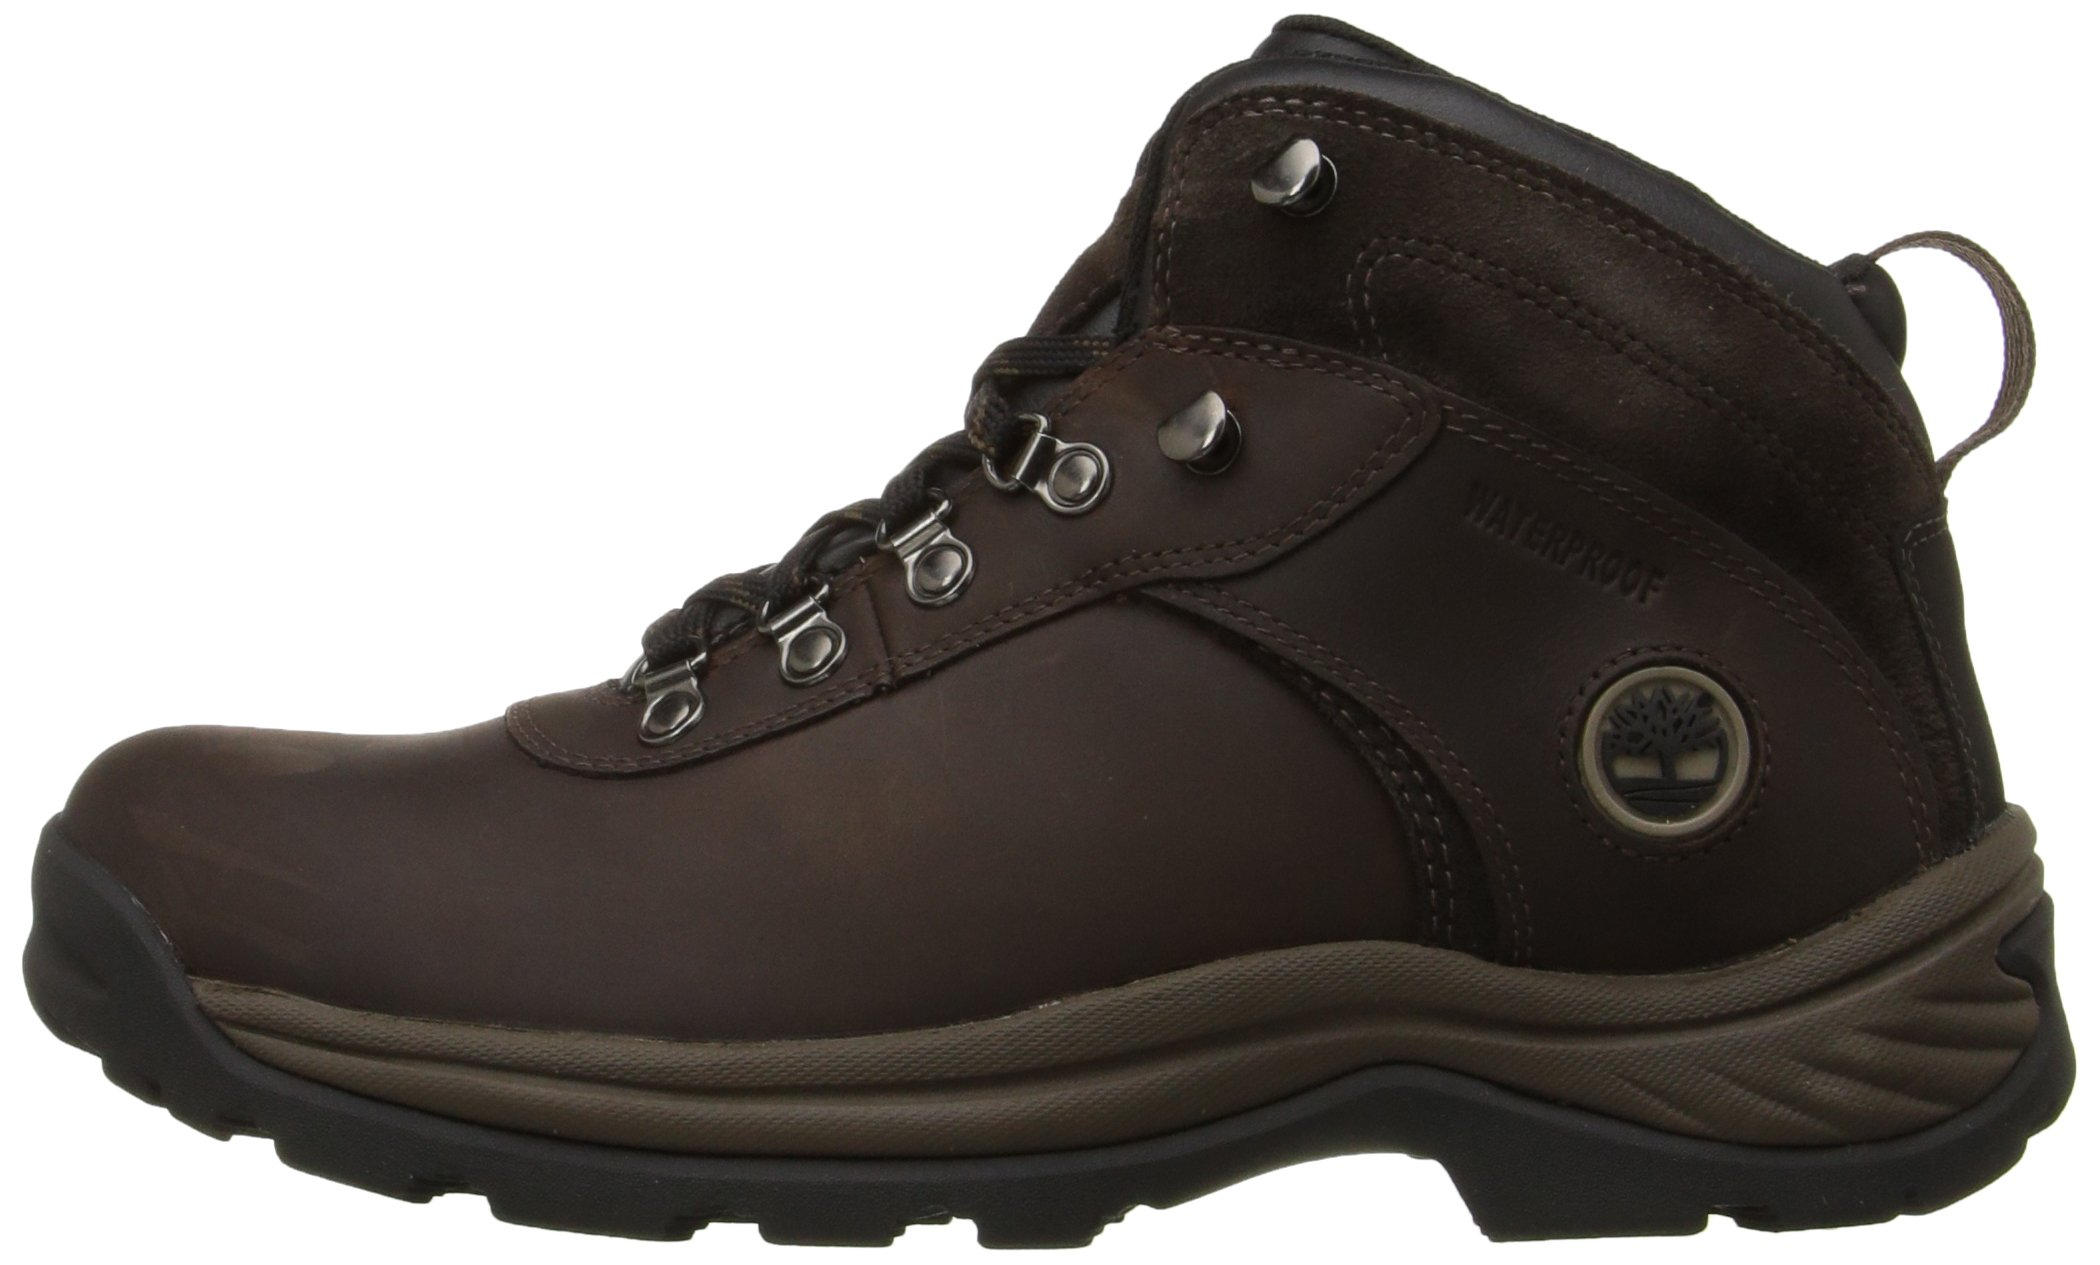 Timberland Men's Flume Waterproof Boot,Dark Brown,13 M US by Timberland (Image #5)